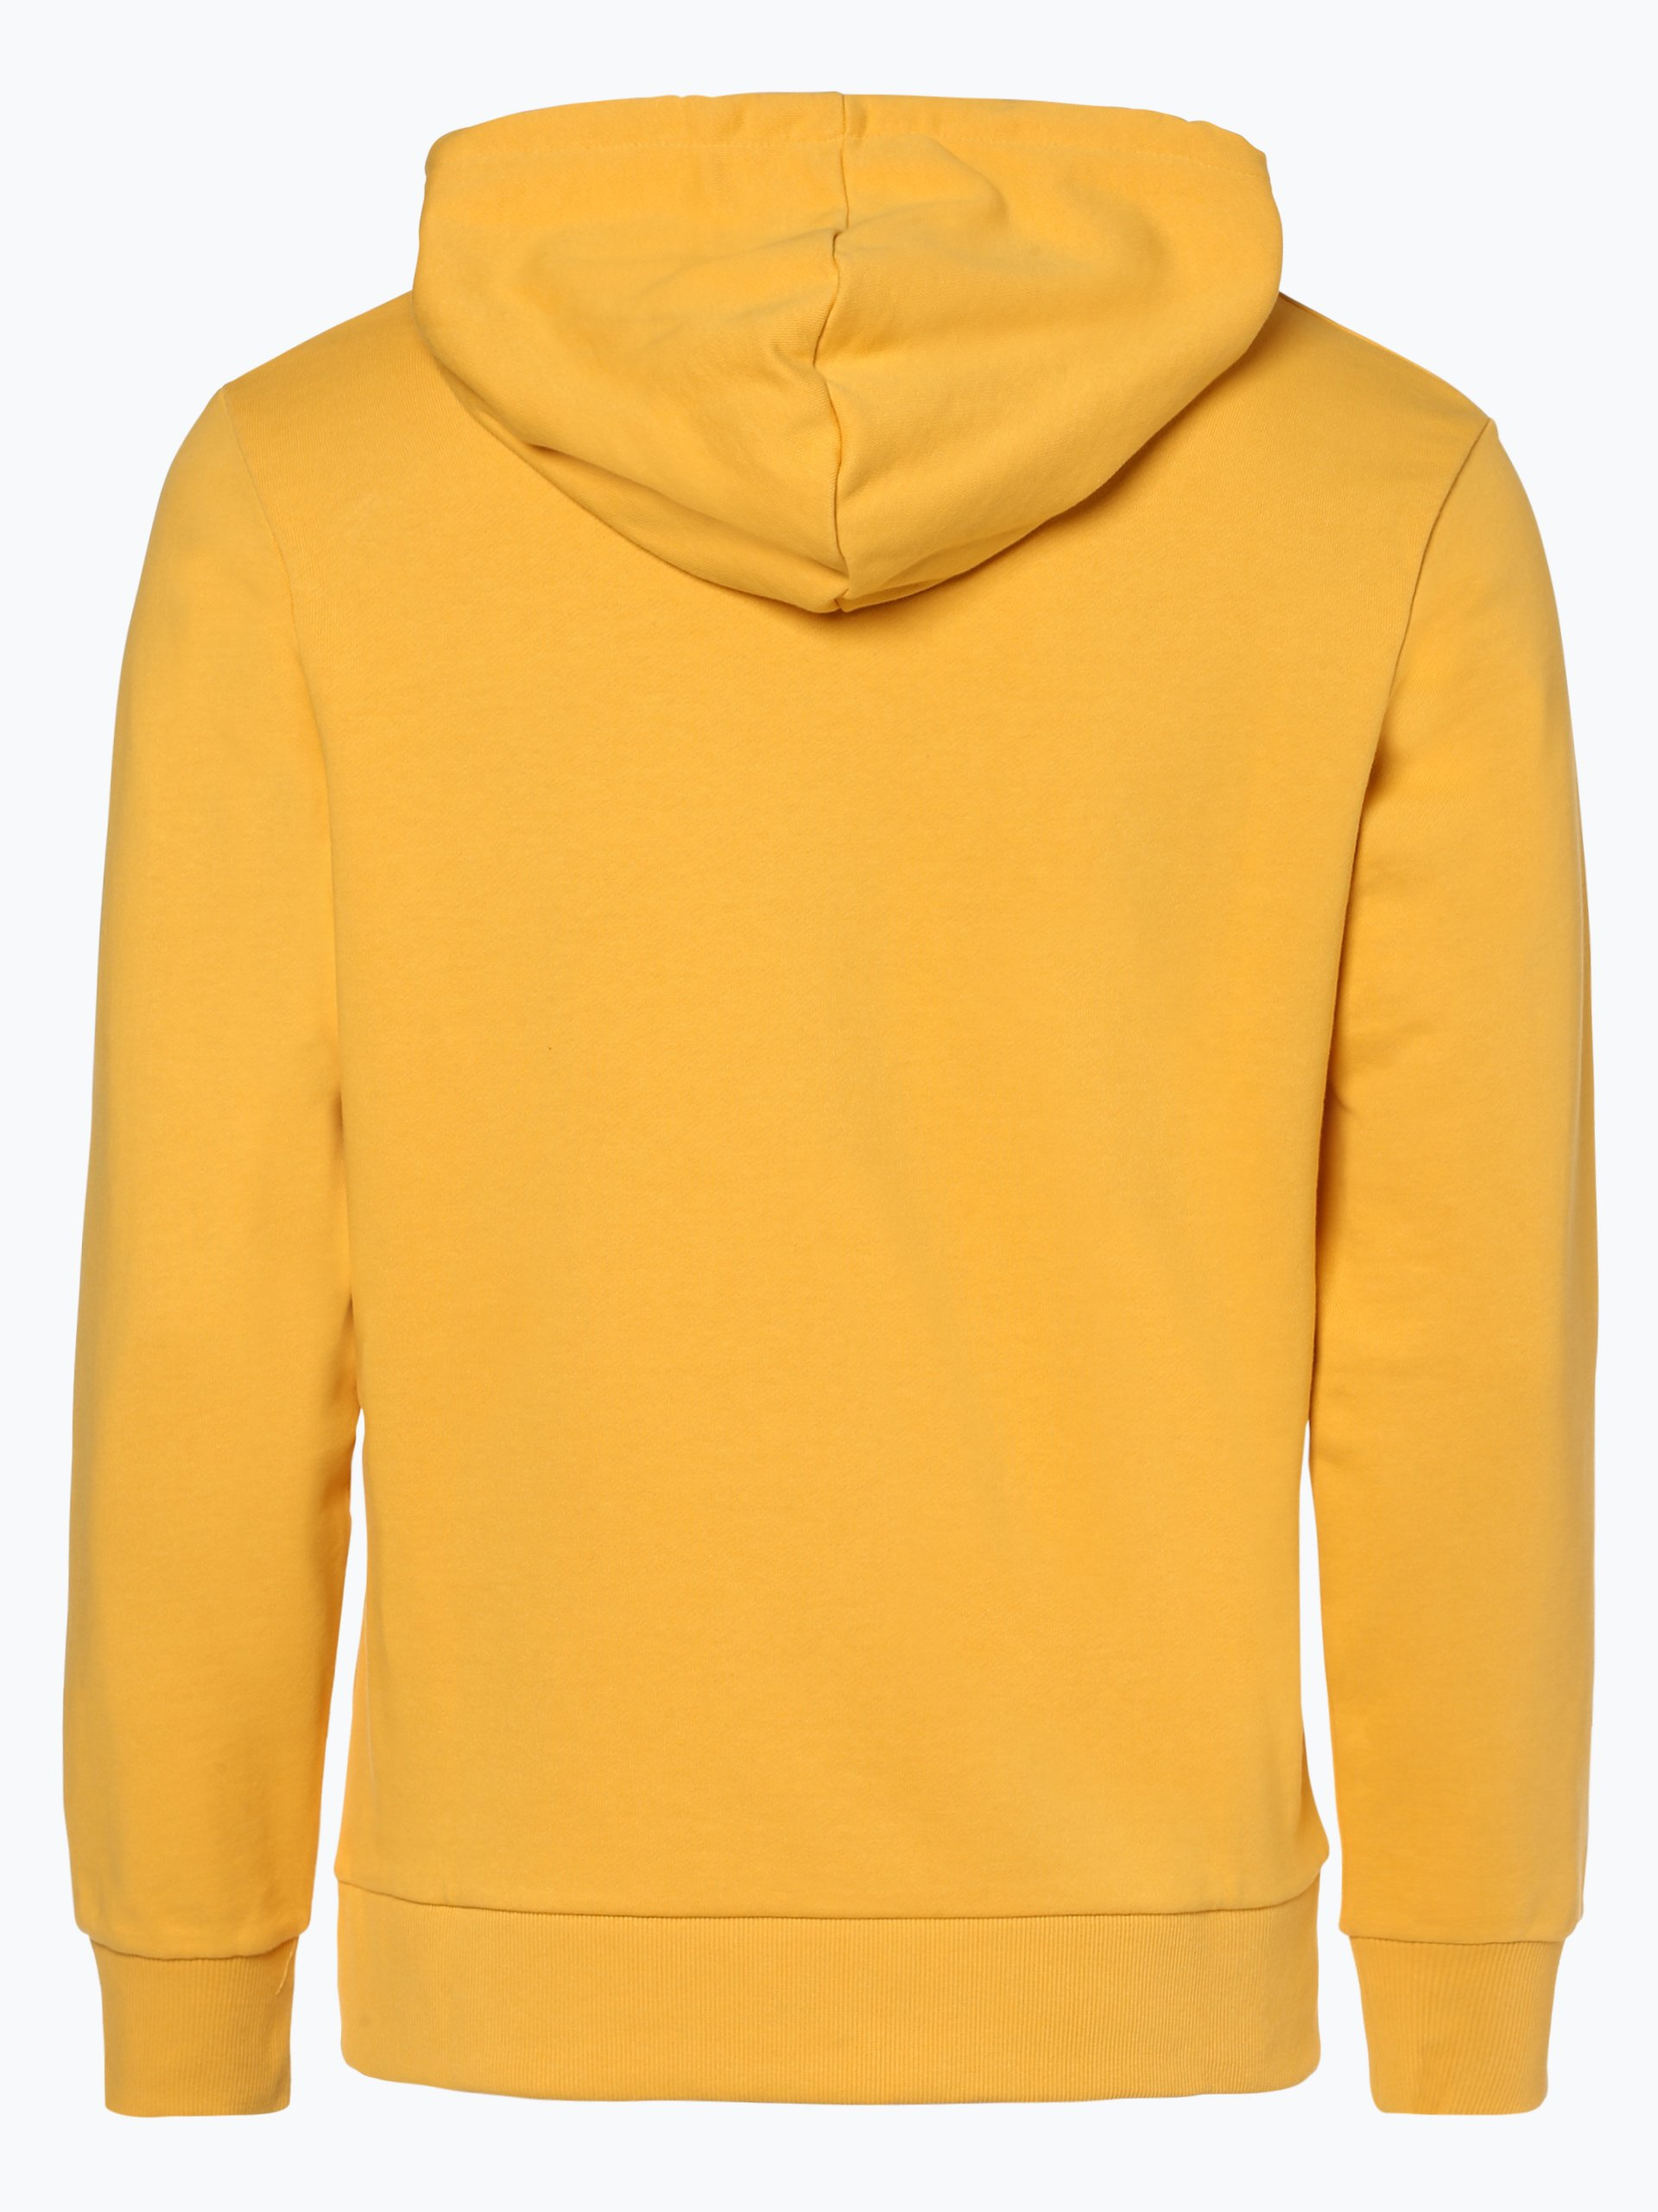 Jack & Jones Herren Sweatshirt